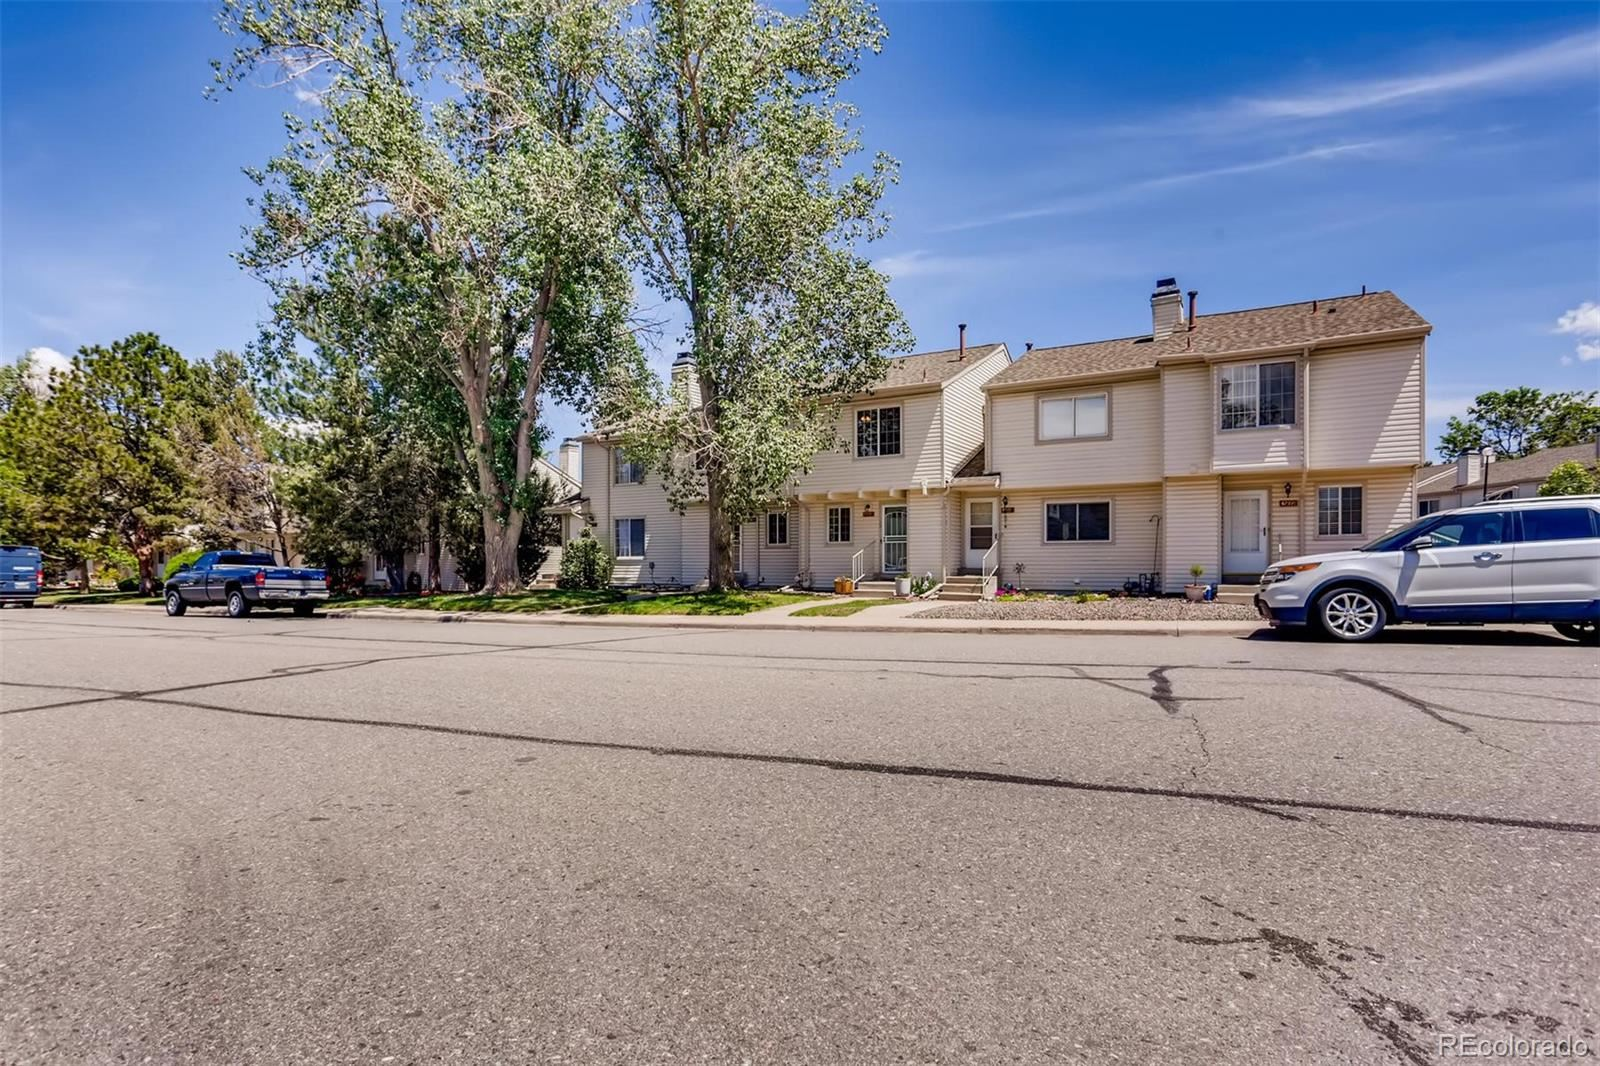 4239 S Mobile Circle  C #C, Aurora, CO 80013 - #: 3345127